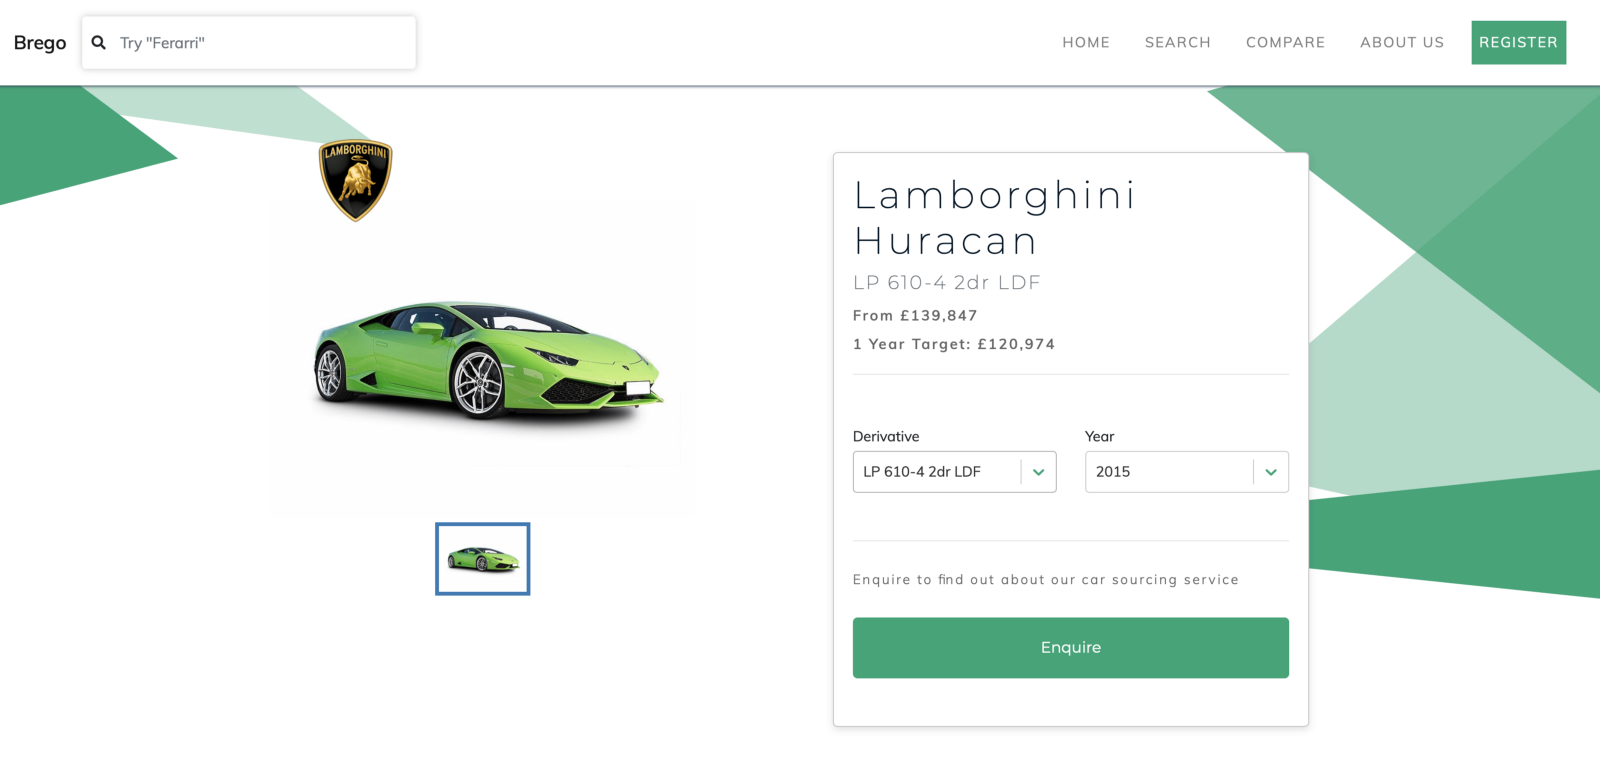 How Much Does It Cost To Own A Lamborghini Huracan